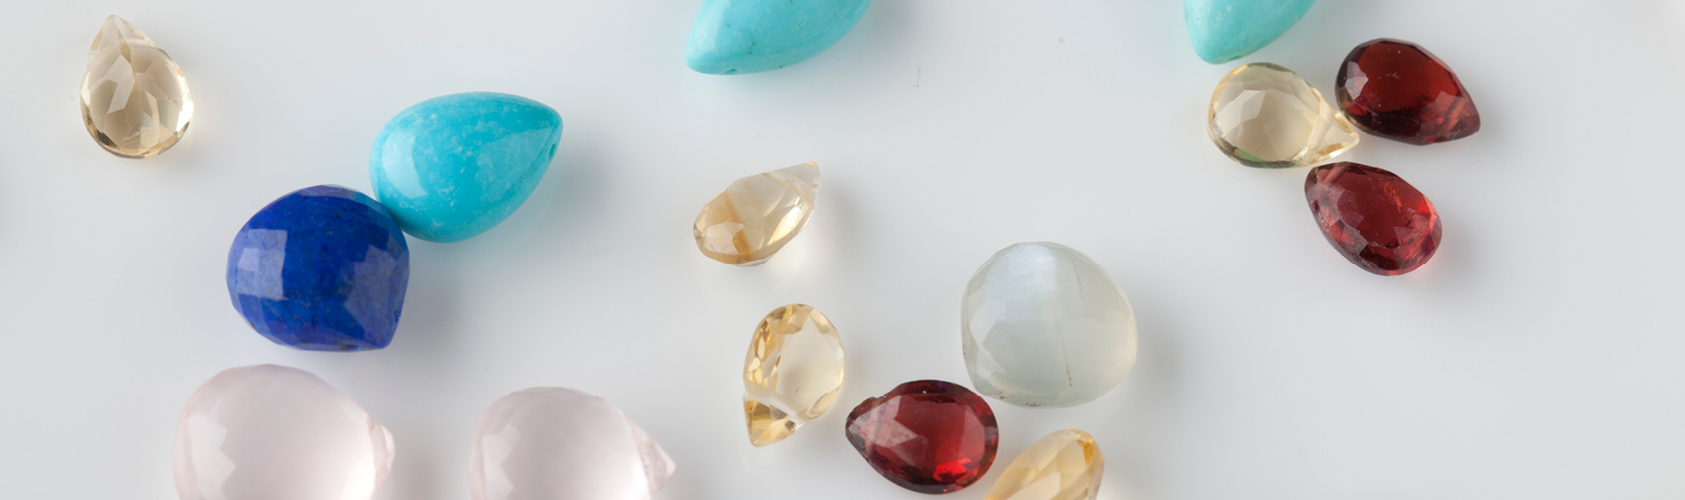 Sophie Lutz banner showing many different gem stones